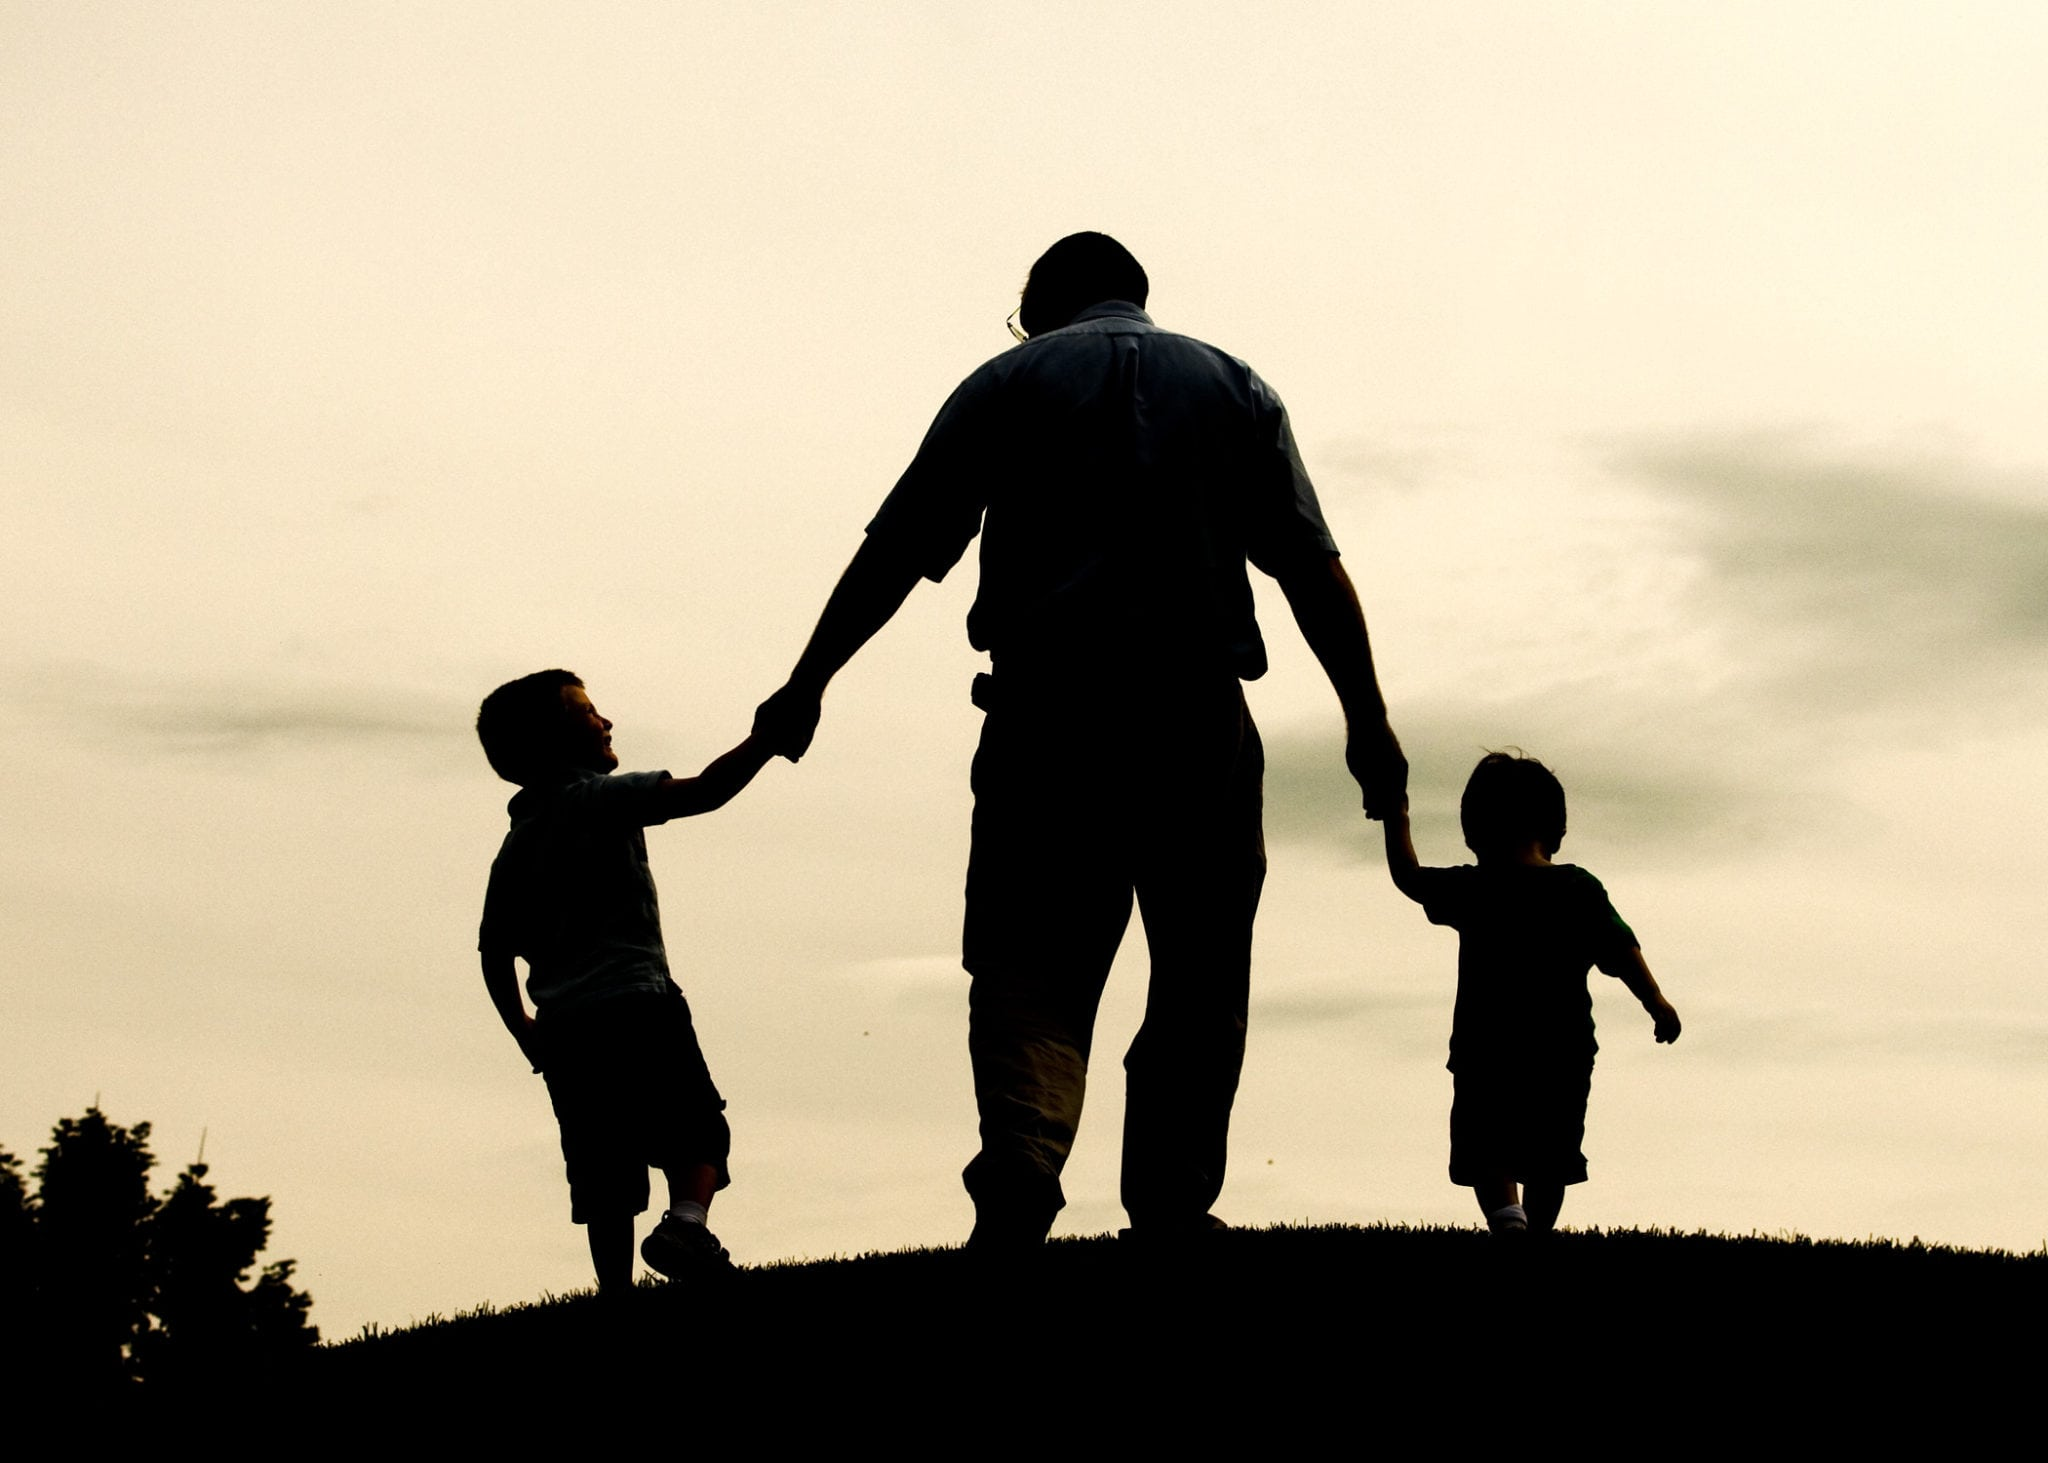 Father on a hill with 2 children